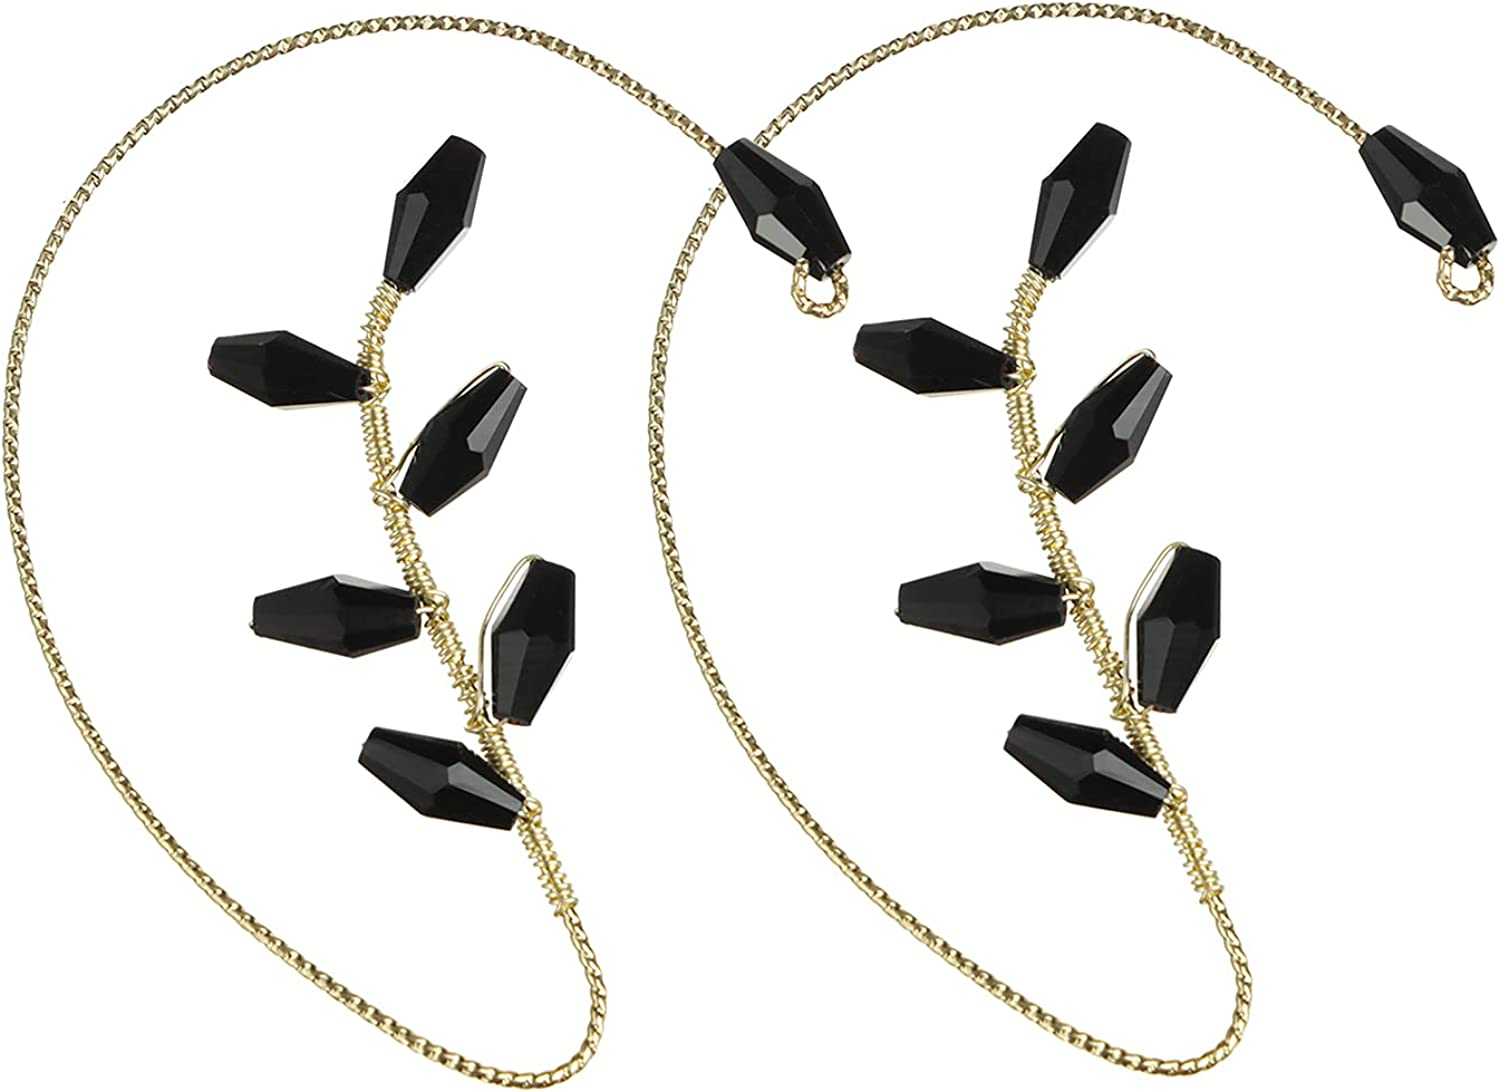 1 Pair of Ladies Black Crystal Earmuff Earrings, Non-Pierced Earrings, Wrap-Around Simple and Fashionable Hollow Hypoallergenic Ear Clips for Ladies,Suitable for Various Places